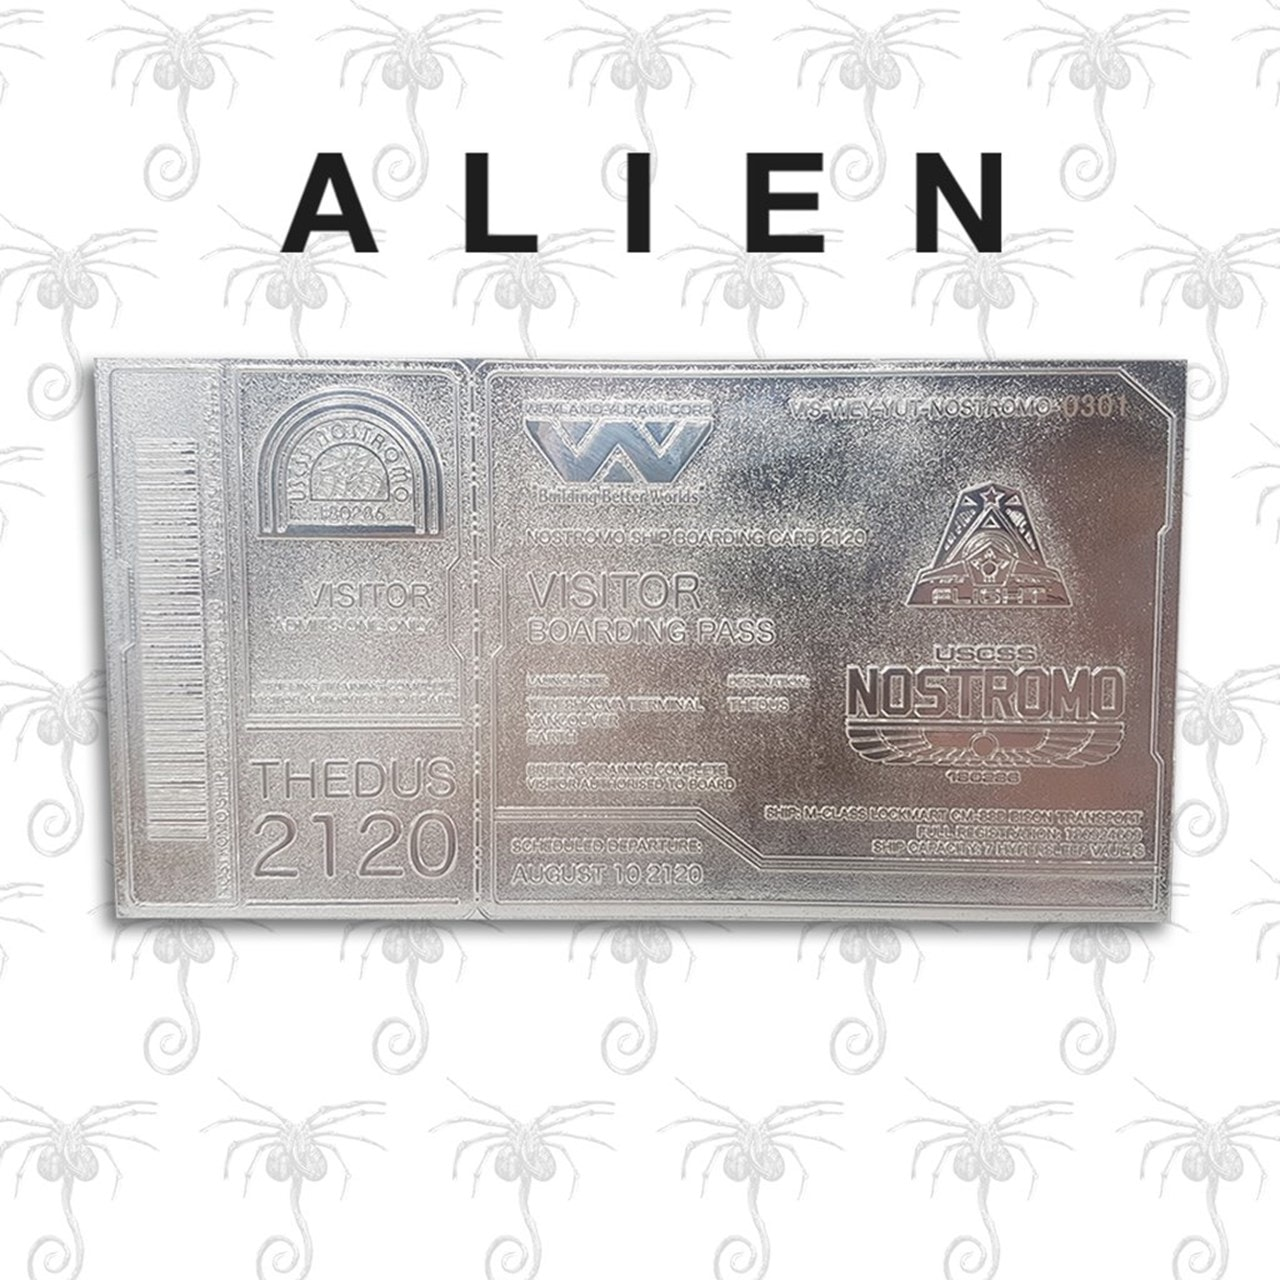 Alien: Silver Plated Ticket Metal Replica (online only) - 1